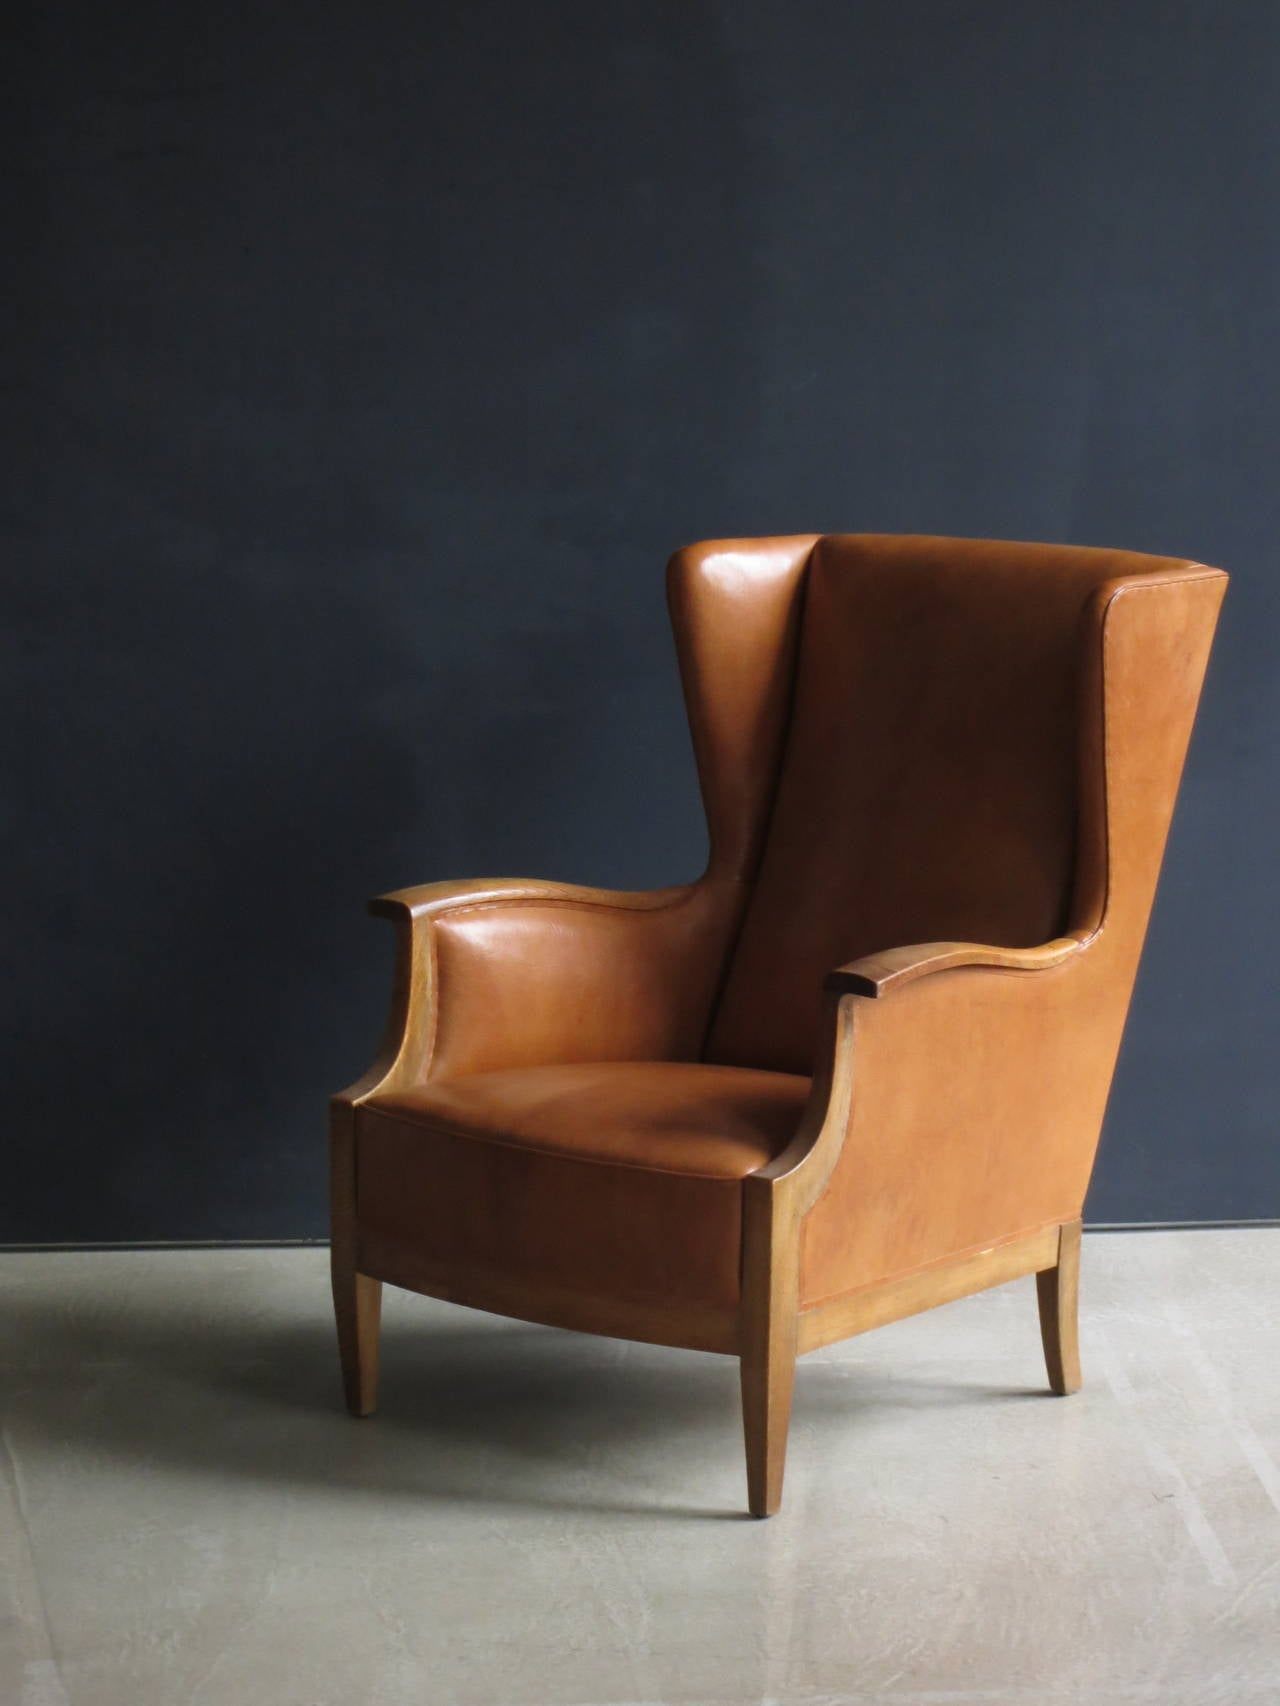 Furniture Fabric In Nigeria 1930s Wingback Chair In Nigerian Leather And Oak By Frits